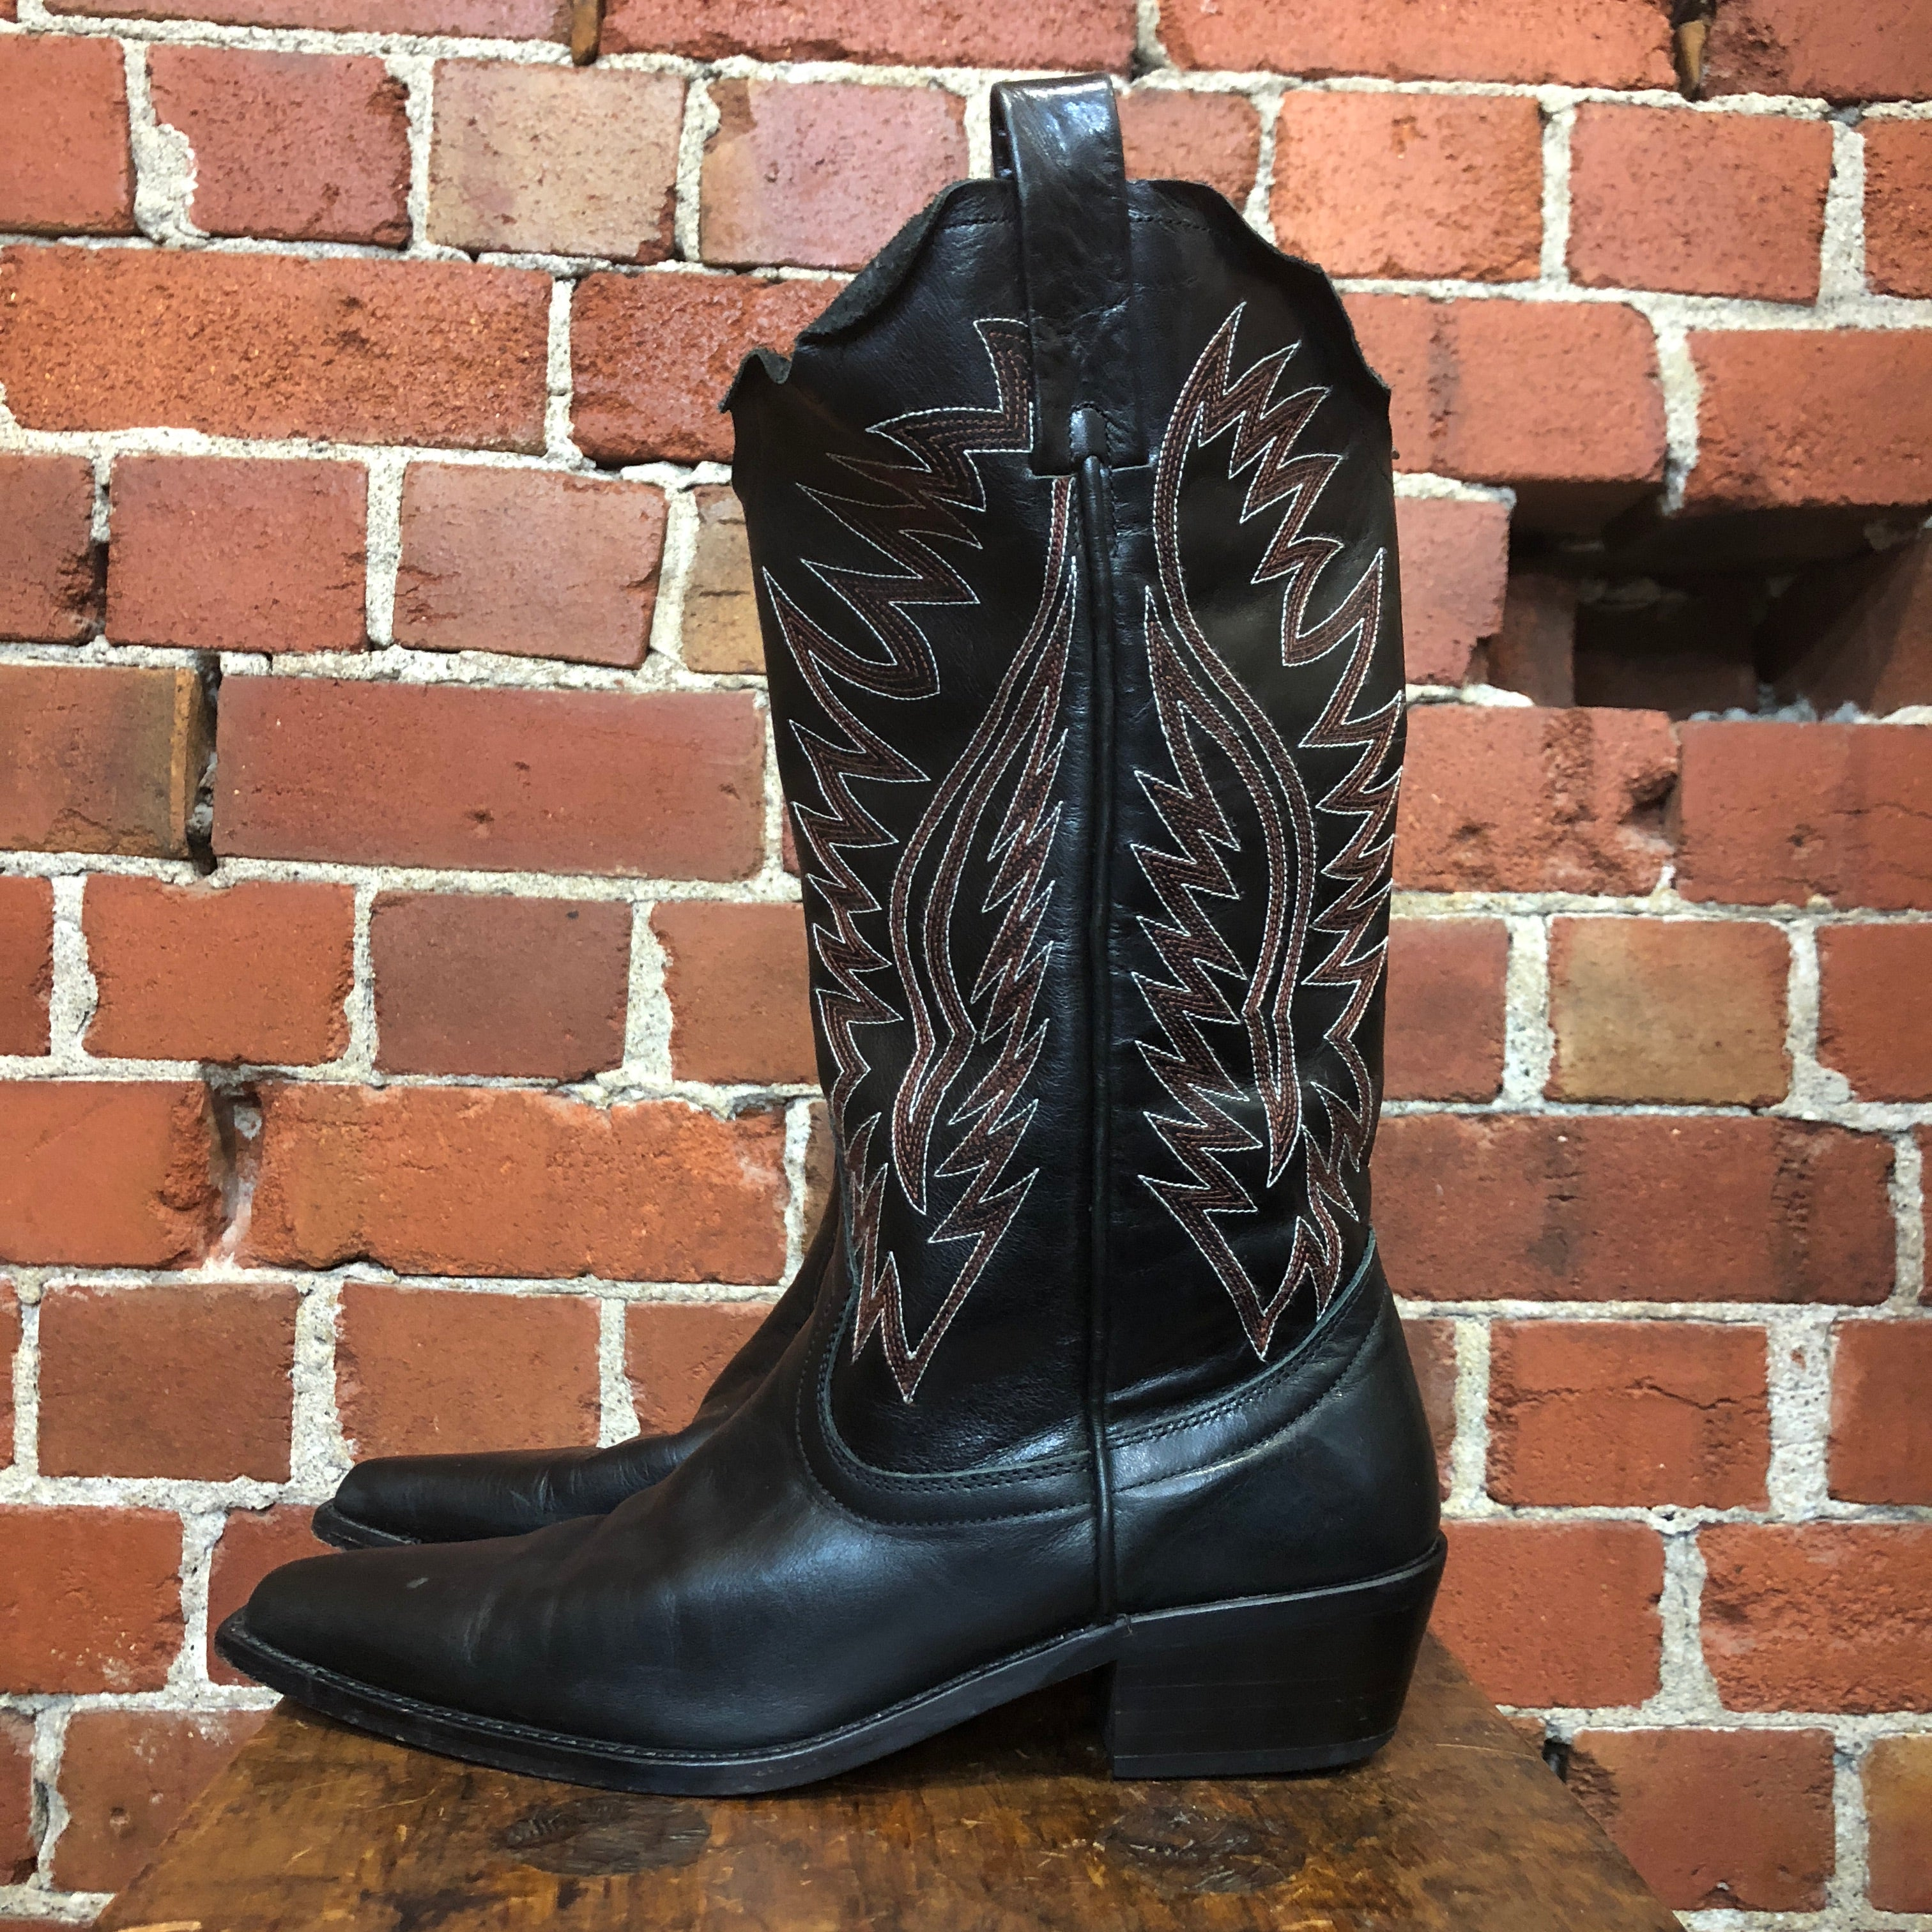 UNDERCOVER 2004 runway collection western boots